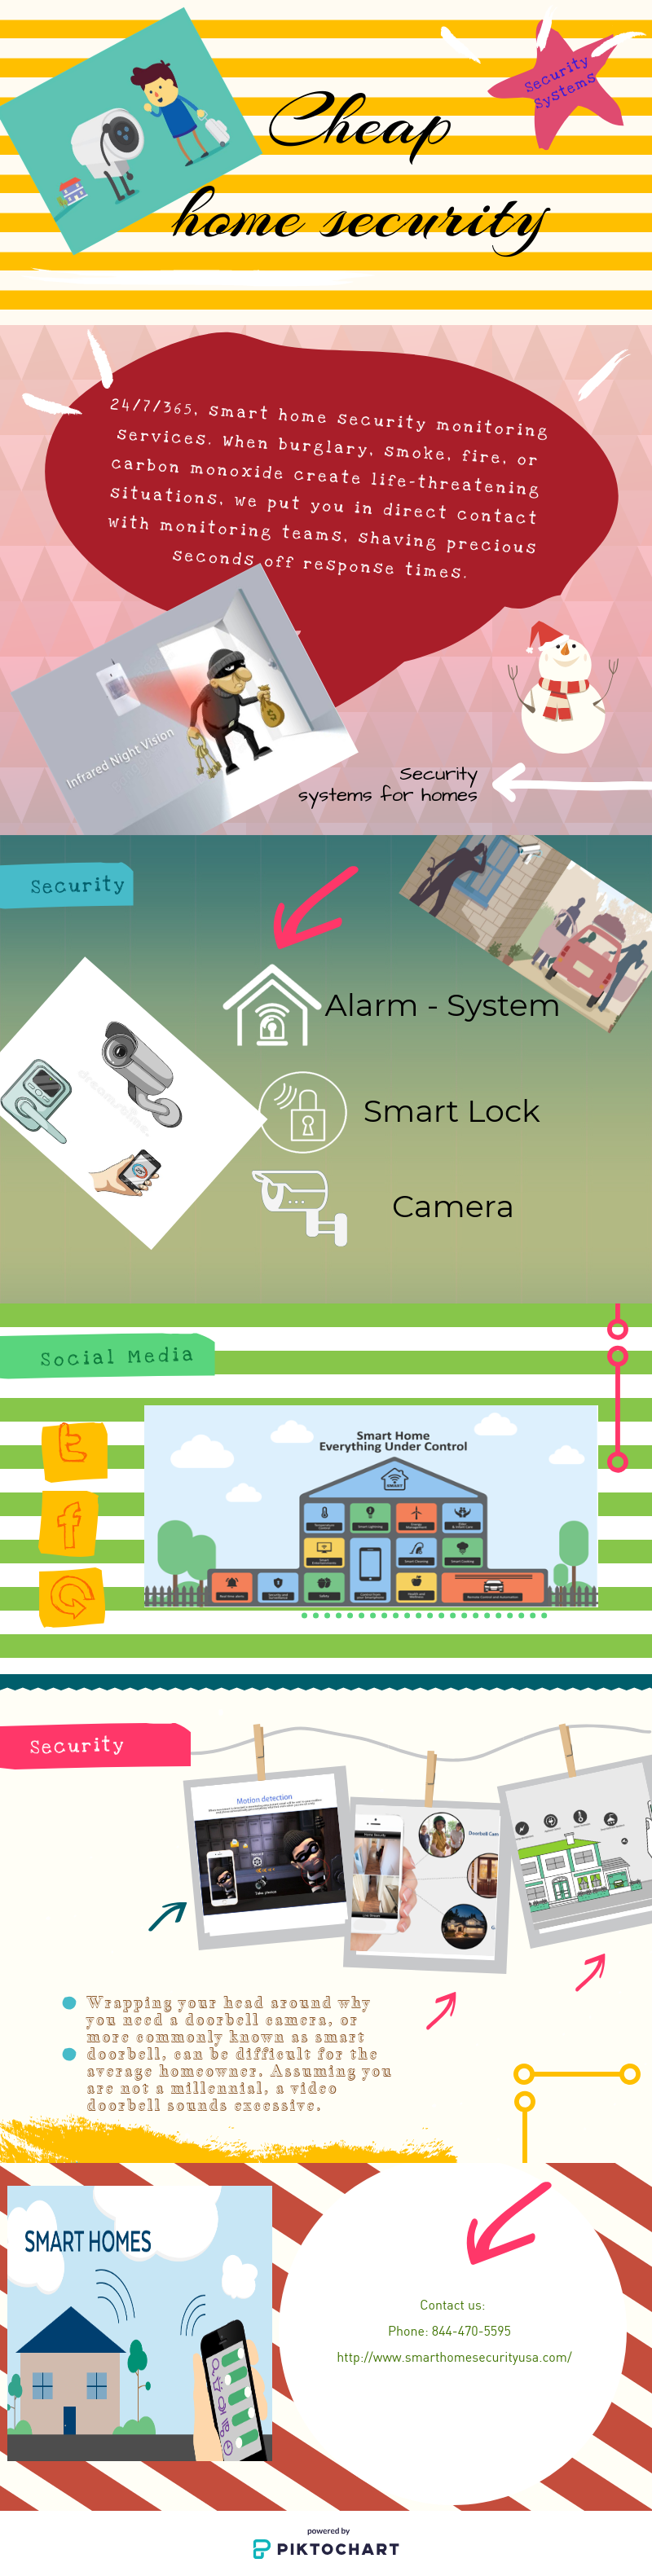 Smart Home Security smarthome on Pinterest